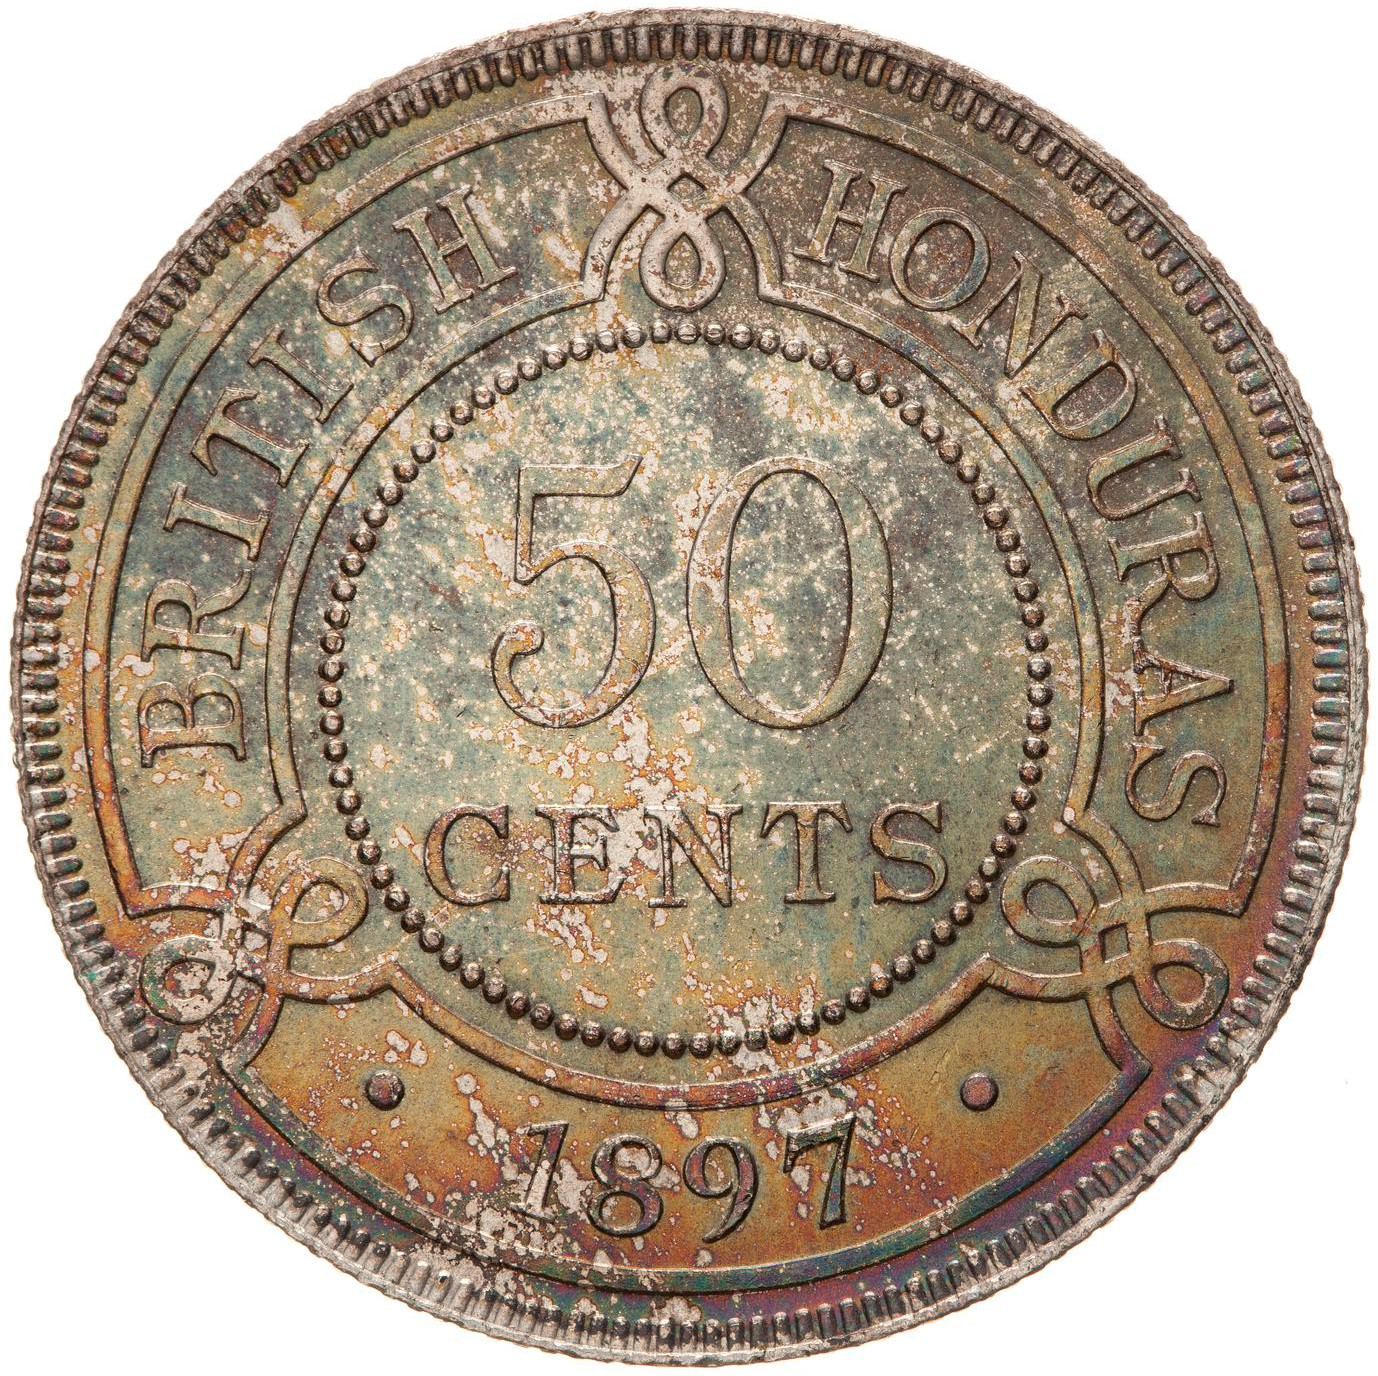 Fifty Cents 1897: Photo Coin - 50 Cents, British Honduras (Belize), 1897